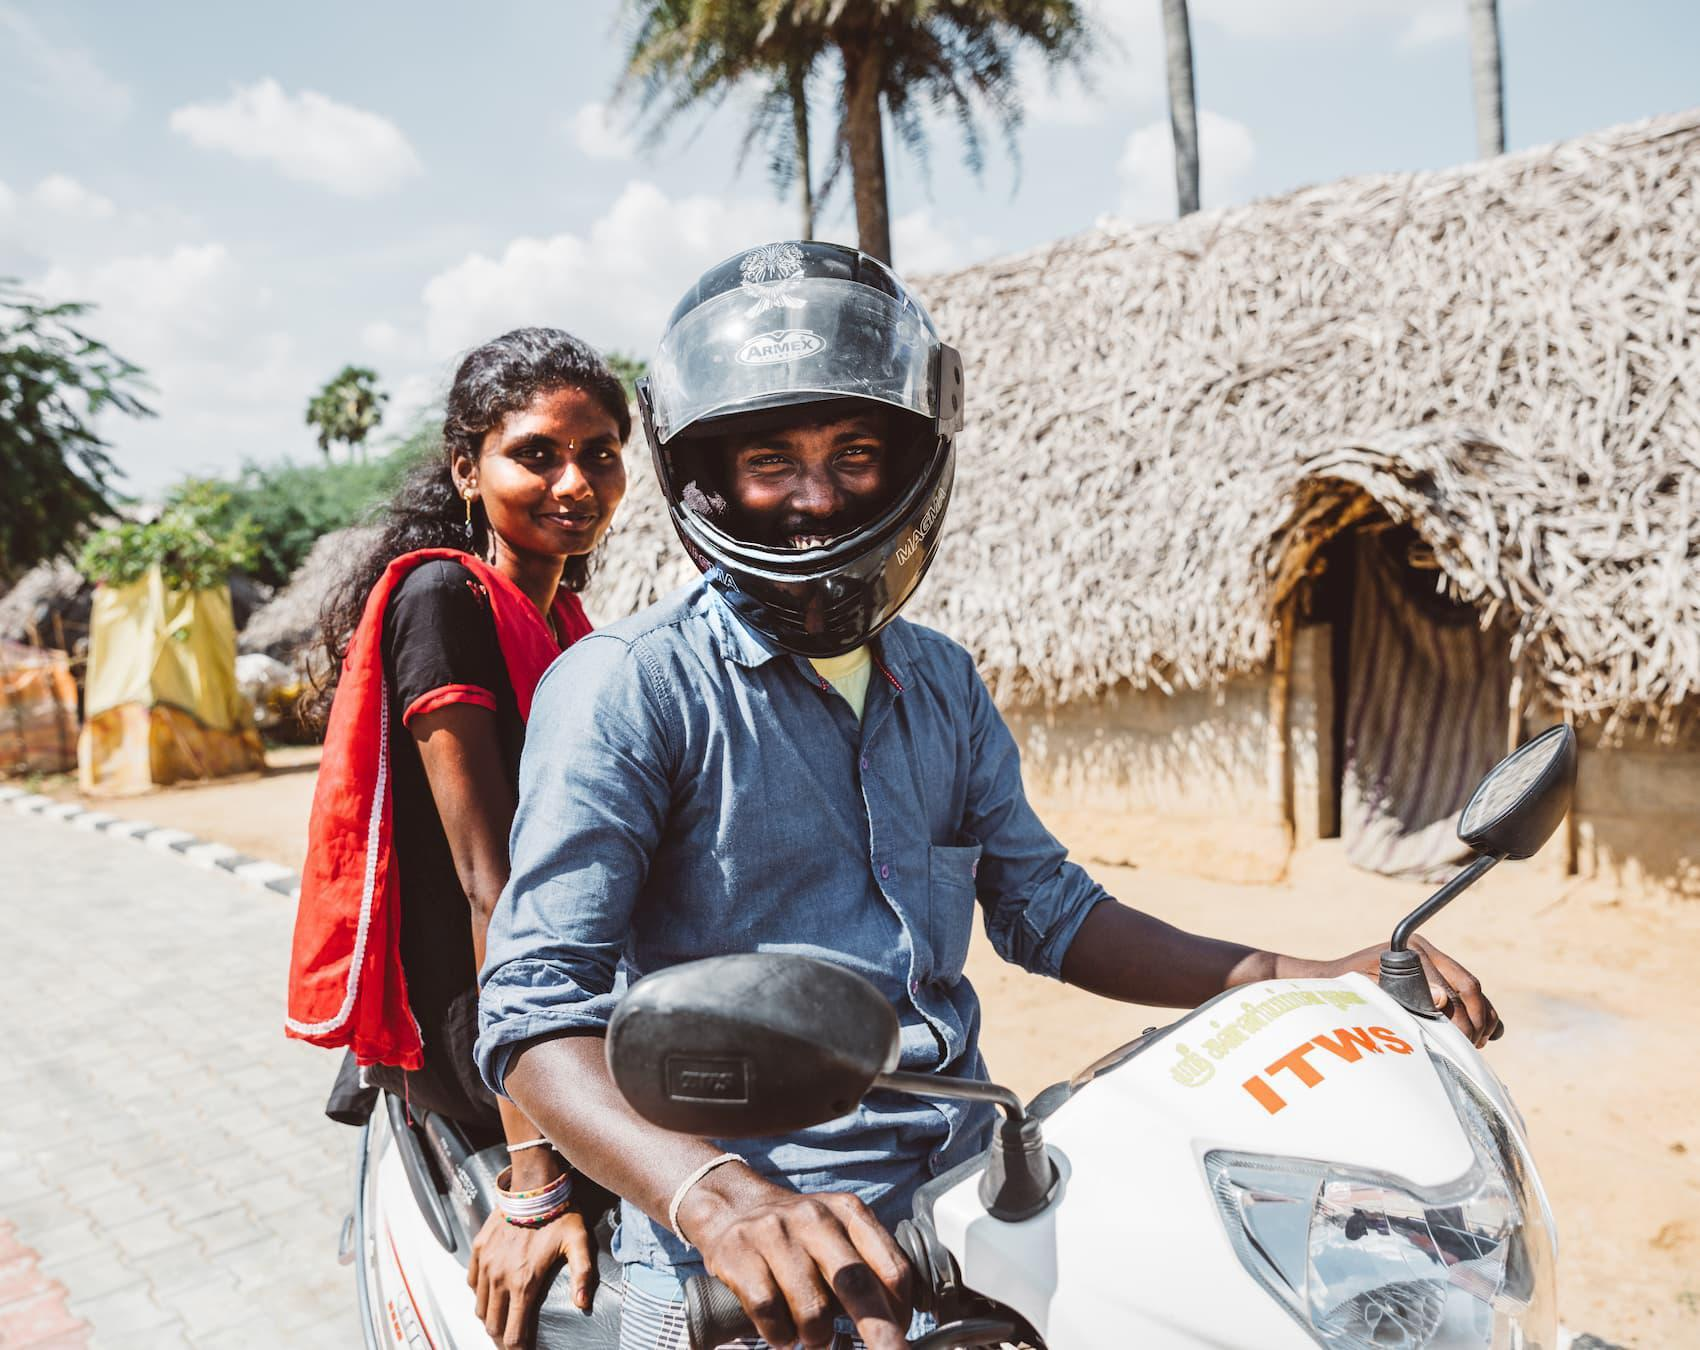 Arul and Pachayamma on his bike